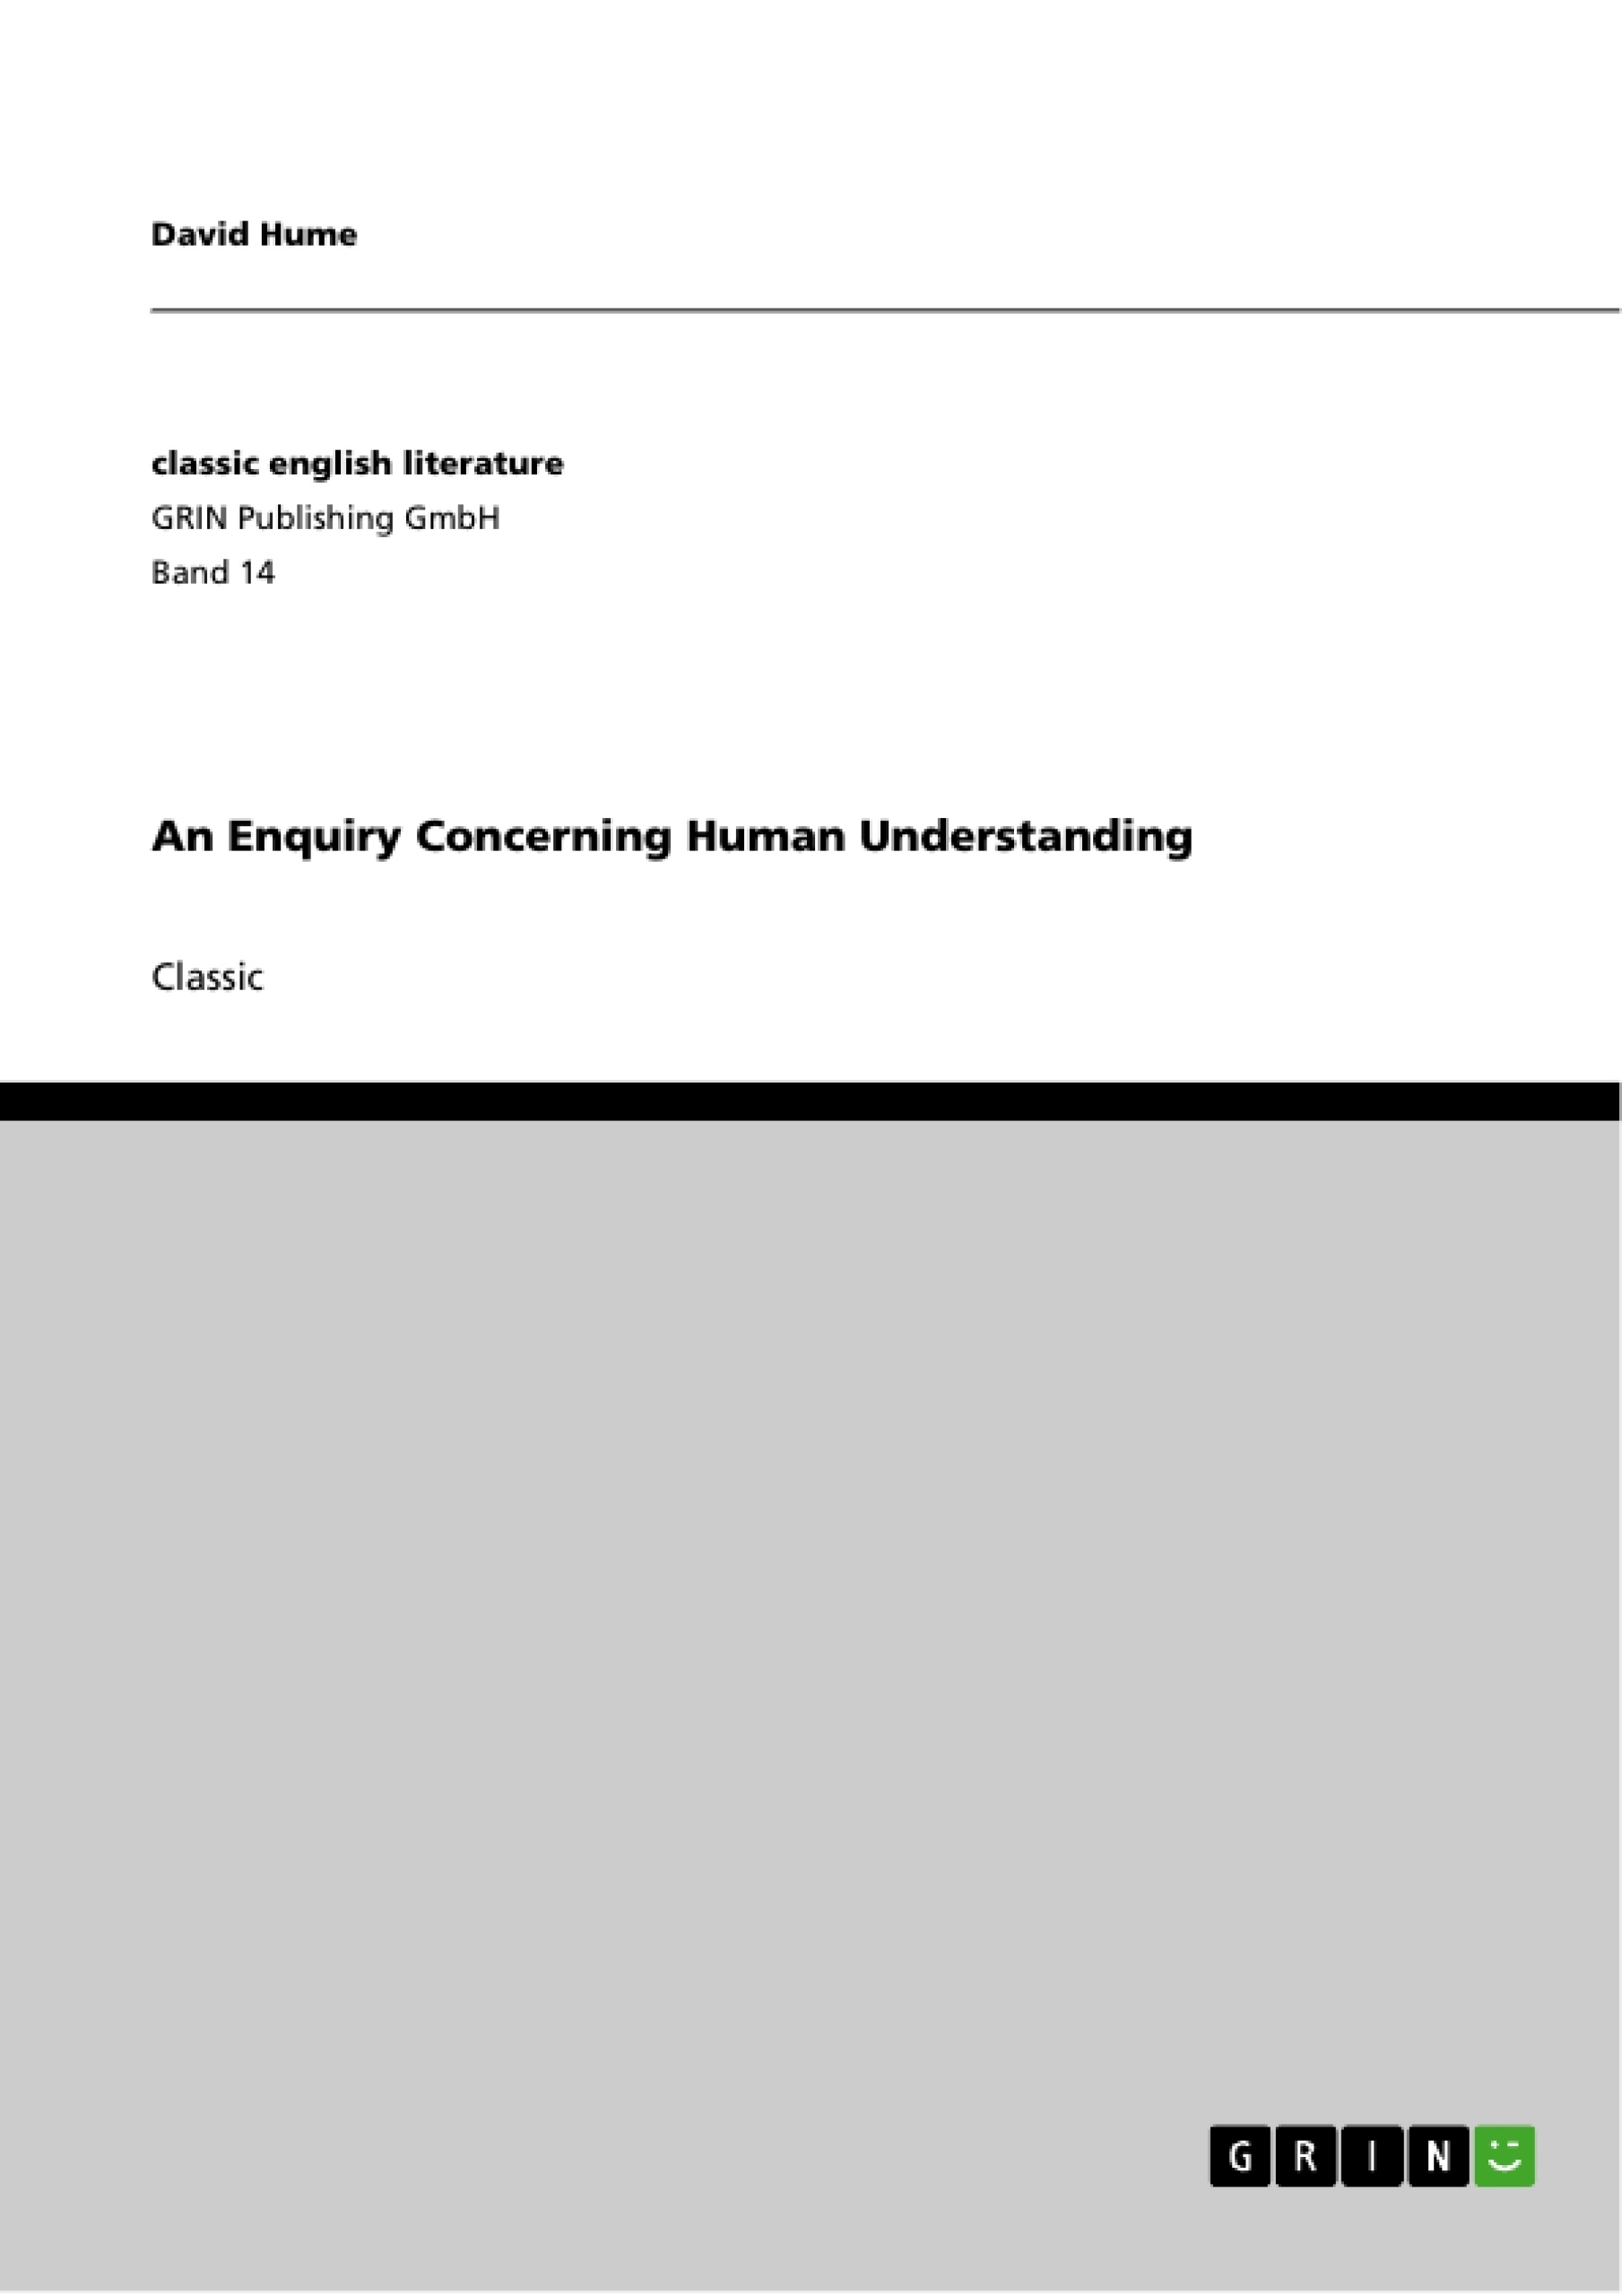 Title: An Enquiry Concerning Human Understanding